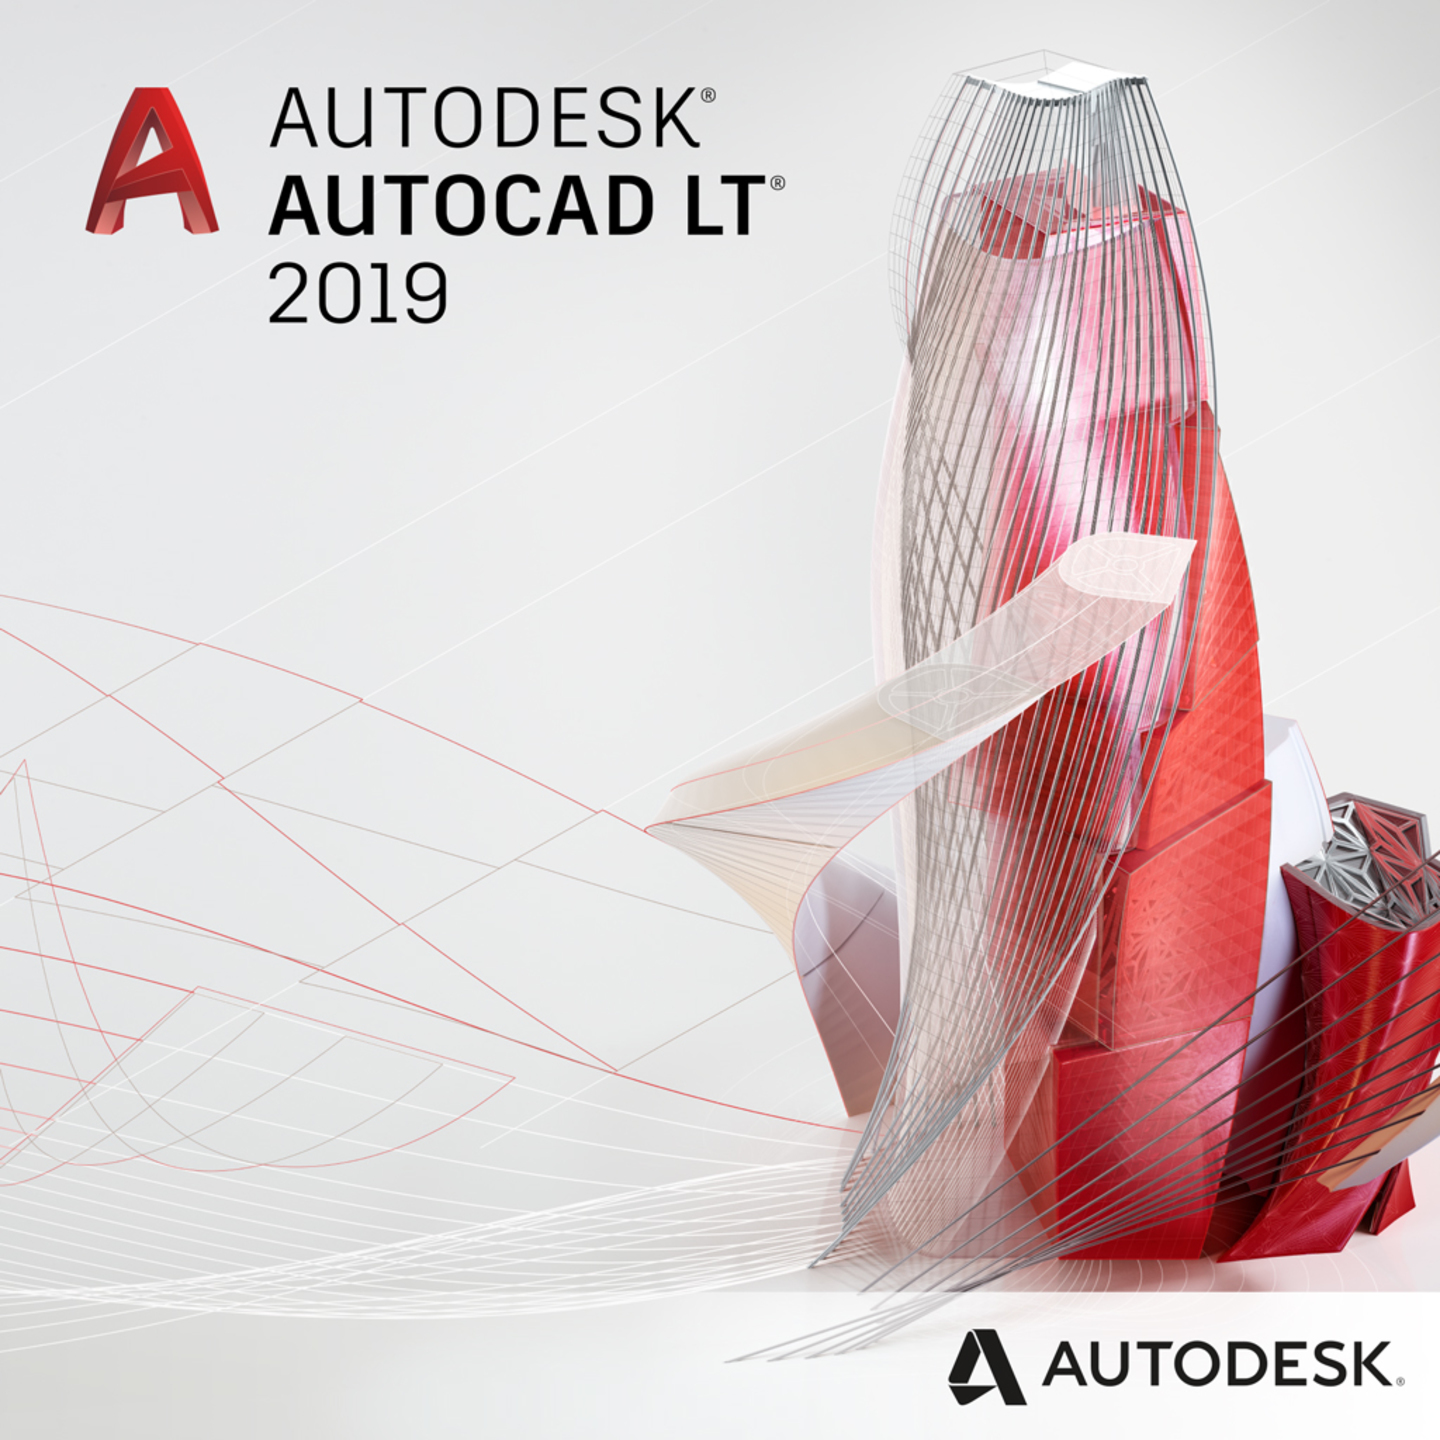 Autodesk Autocad LT 2019 (3-Years Subscription)